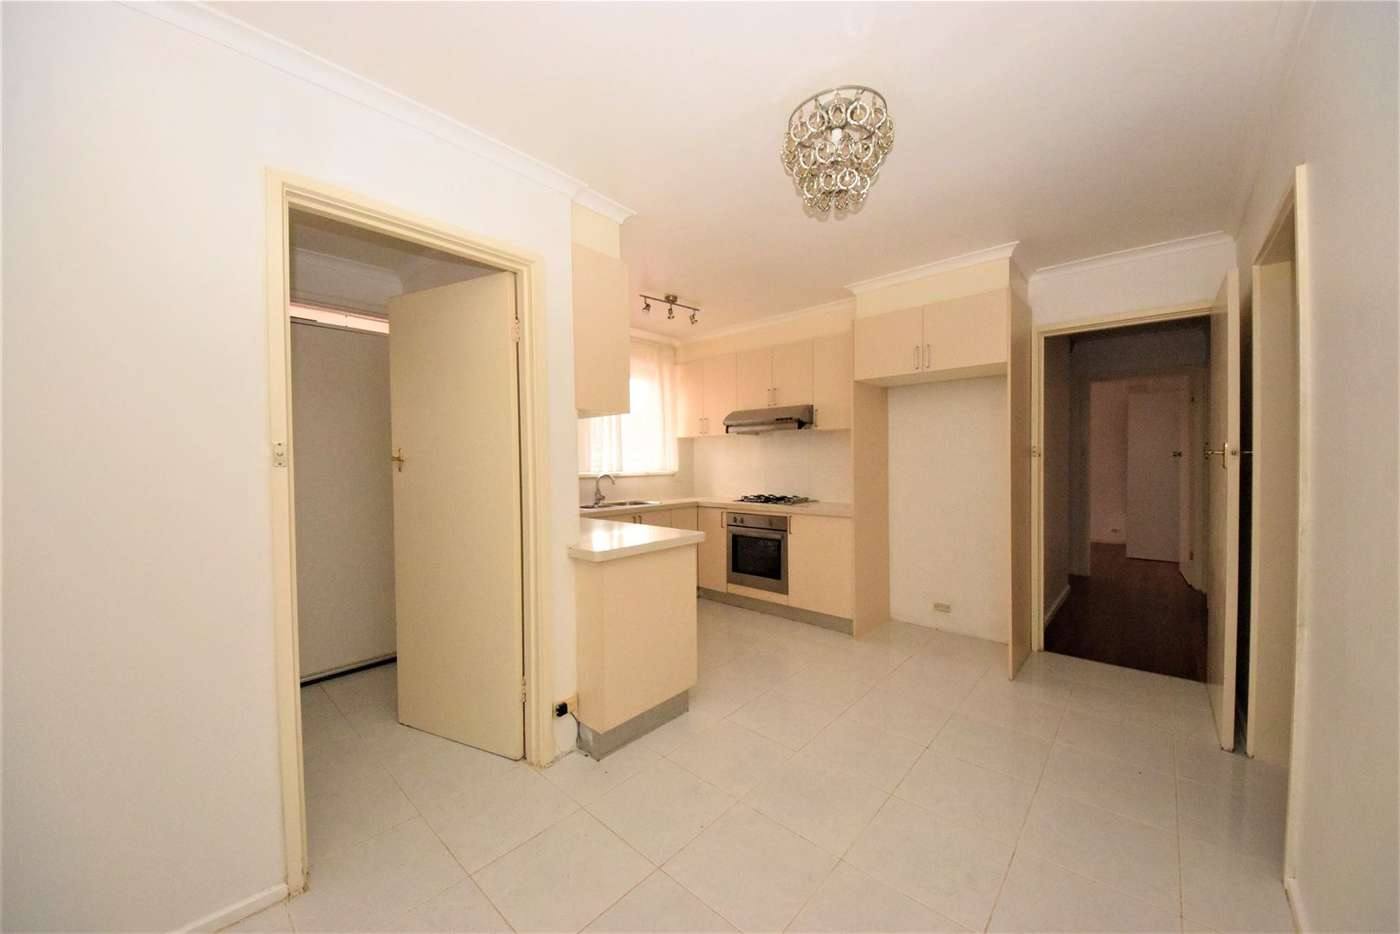 Sixth view of Homely unit listing, 5/900 Station Street, Box Hill North VIC 3129